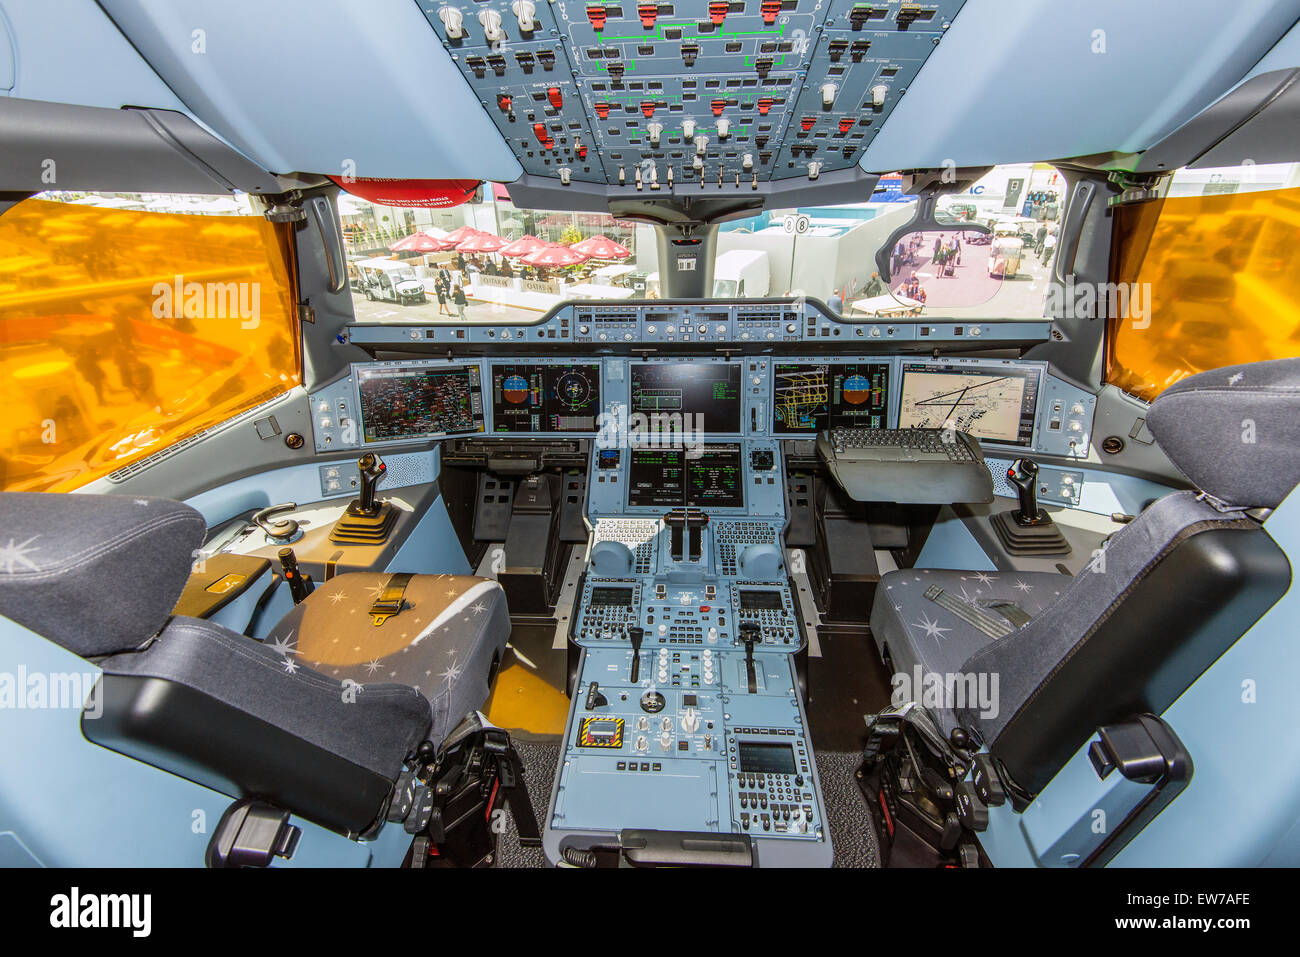 Interior view of the cockpit of the Qatar Airways Airbus A350-900 - Stock Image